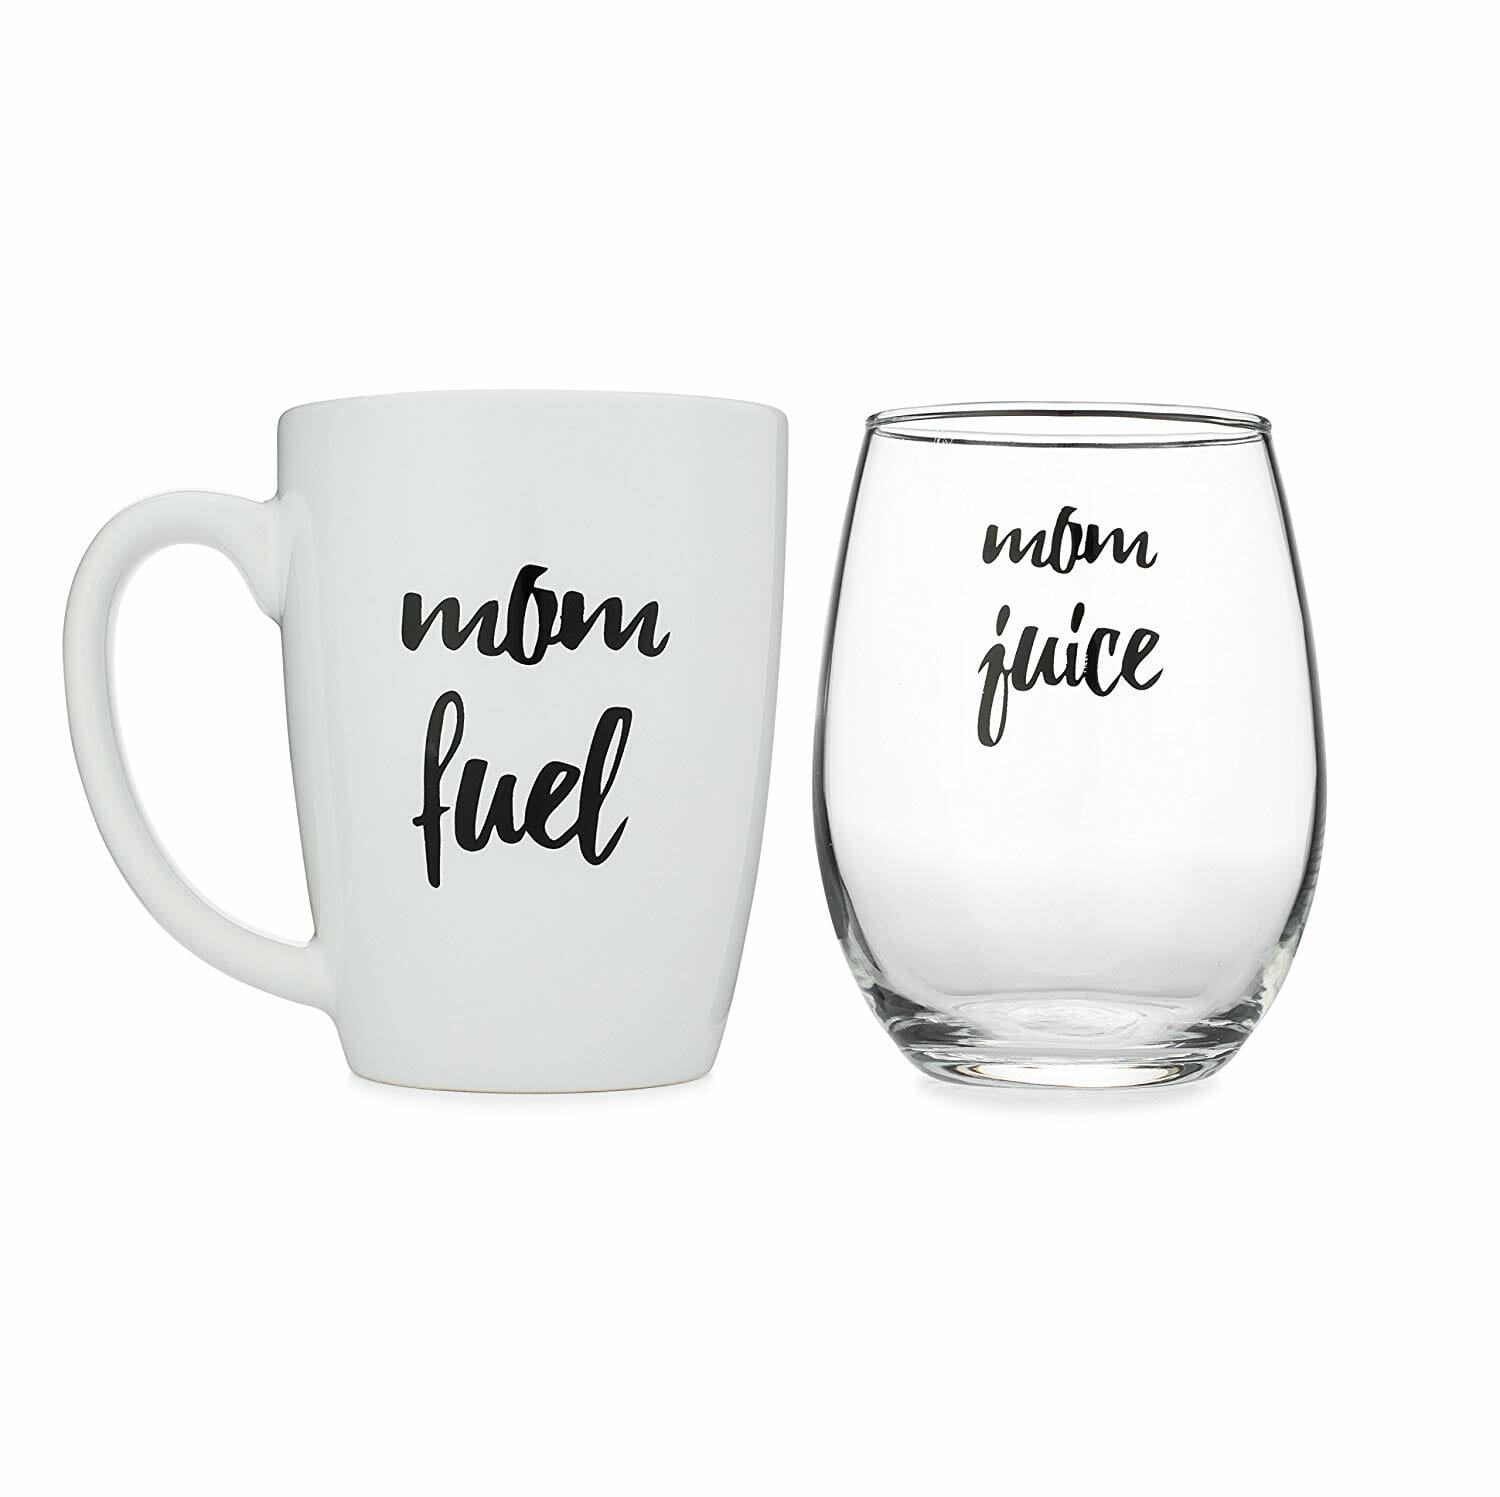 36 Funny Coffee Mugs That Will Make All Your Co-Workers Jealous in ...